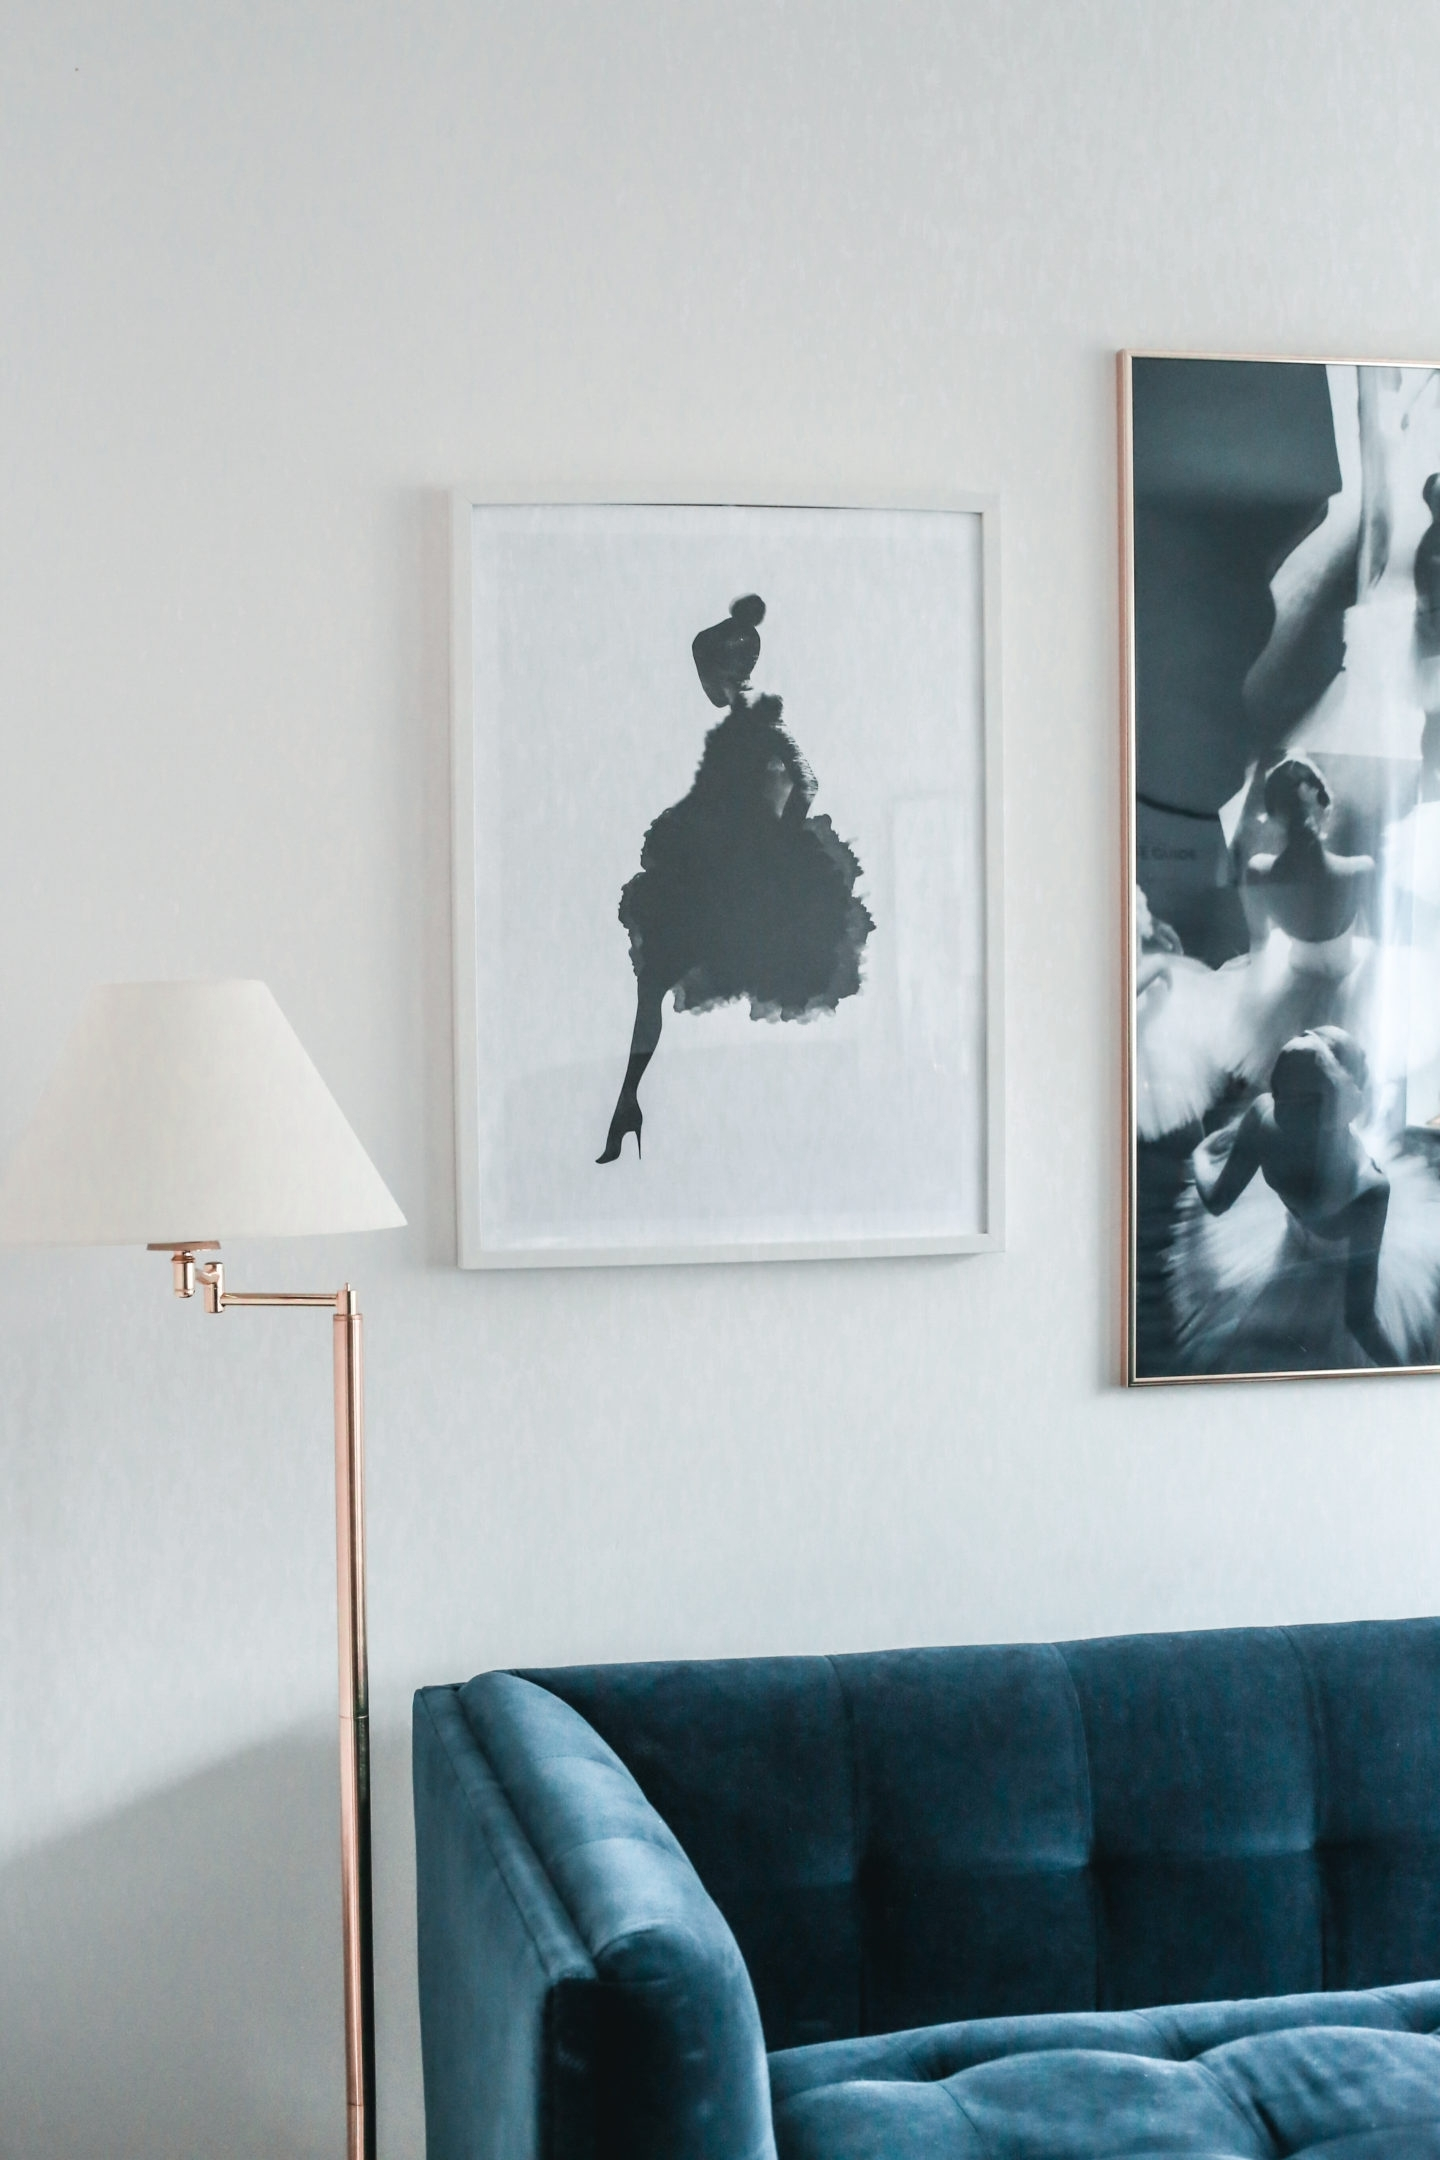 Affordable Wall Art With Regard To Fashionable Affordable Wall Art You'll Love From Desenio – Launeden (Gallery 17 of 20)